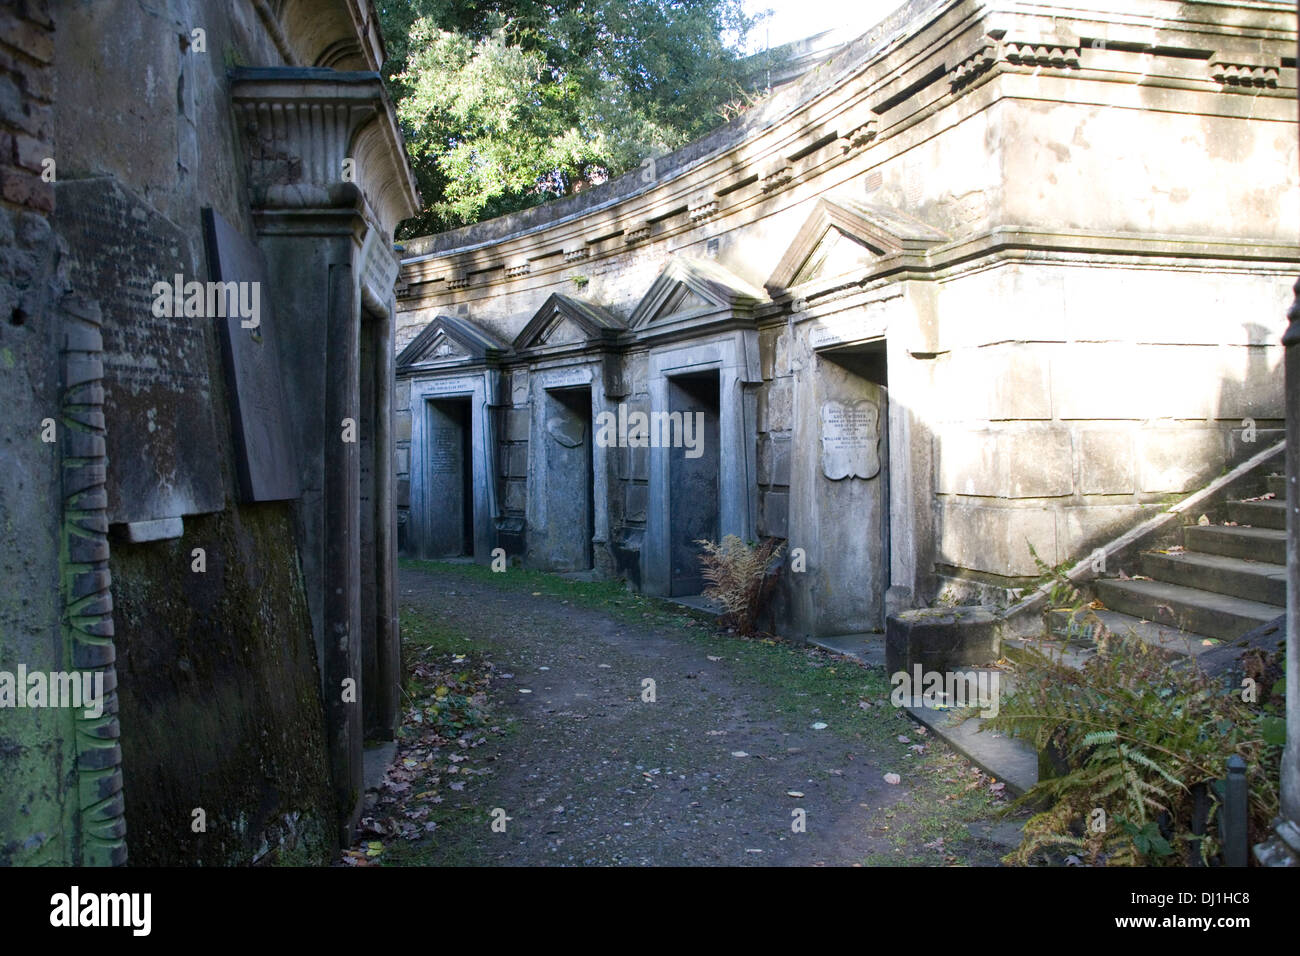 Catacombs at Highgate cemetery Stock Photo